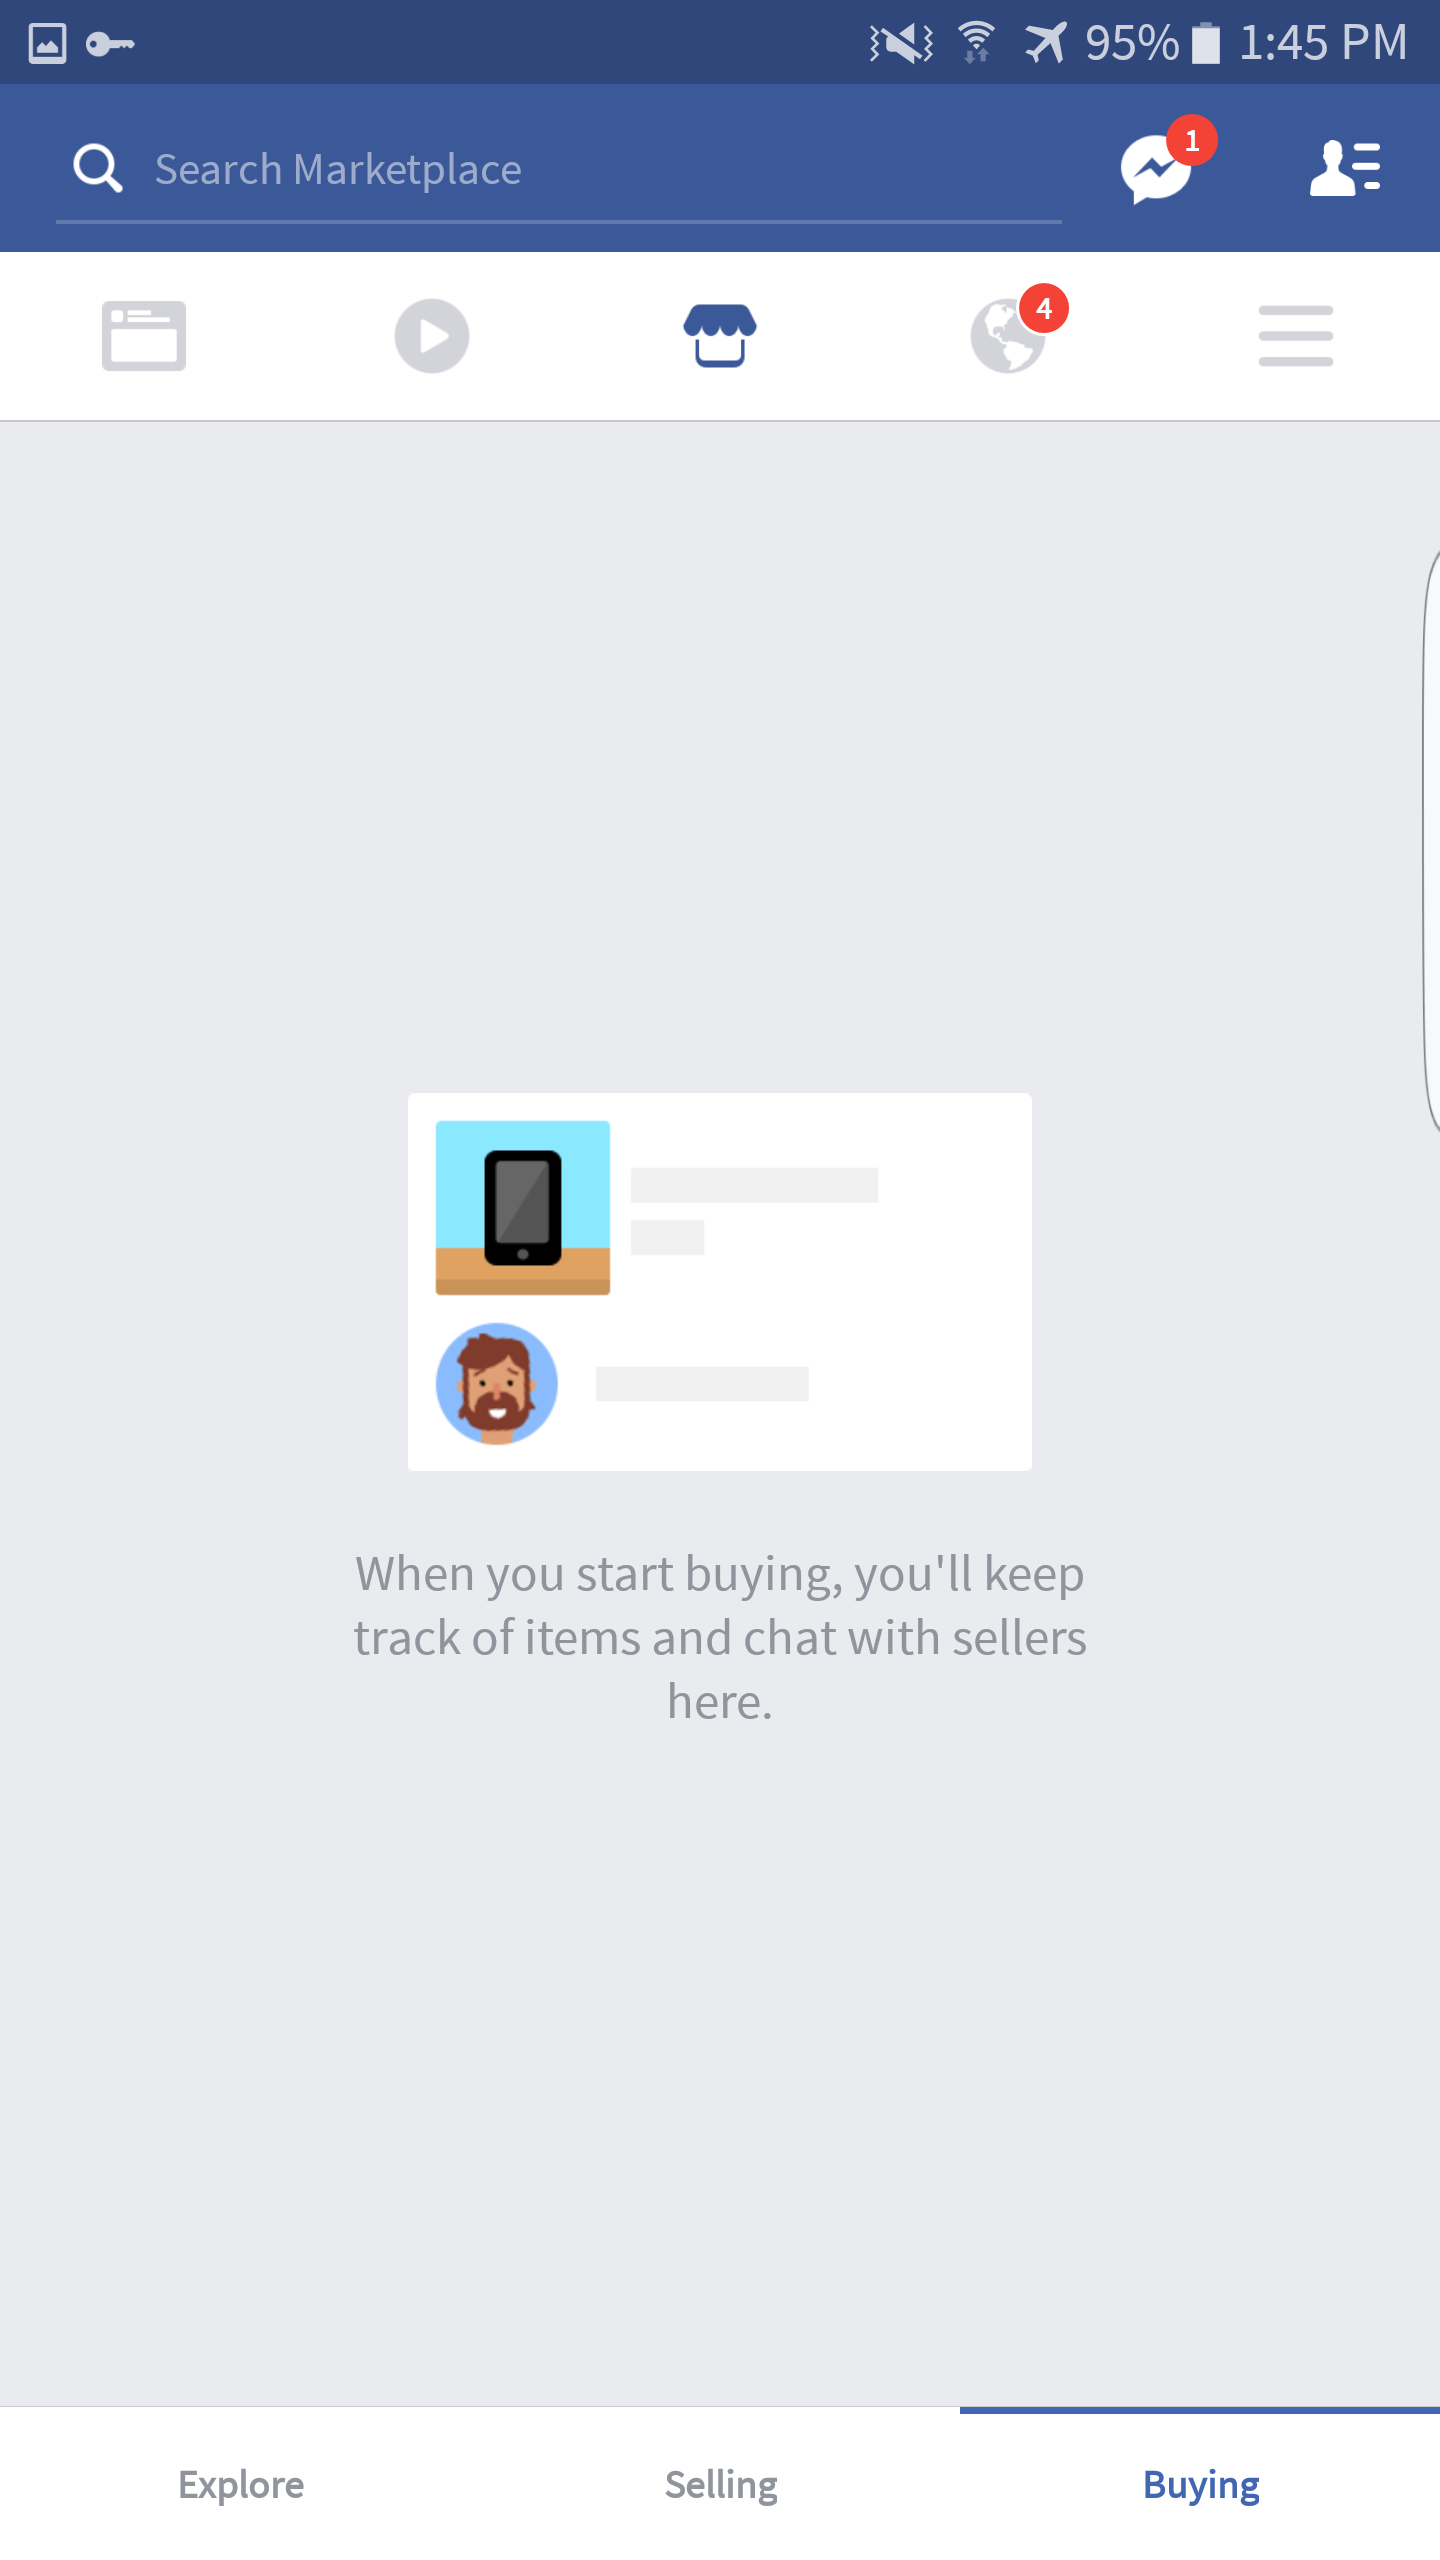 Facebook starts testing Marketplace tab in their Android app